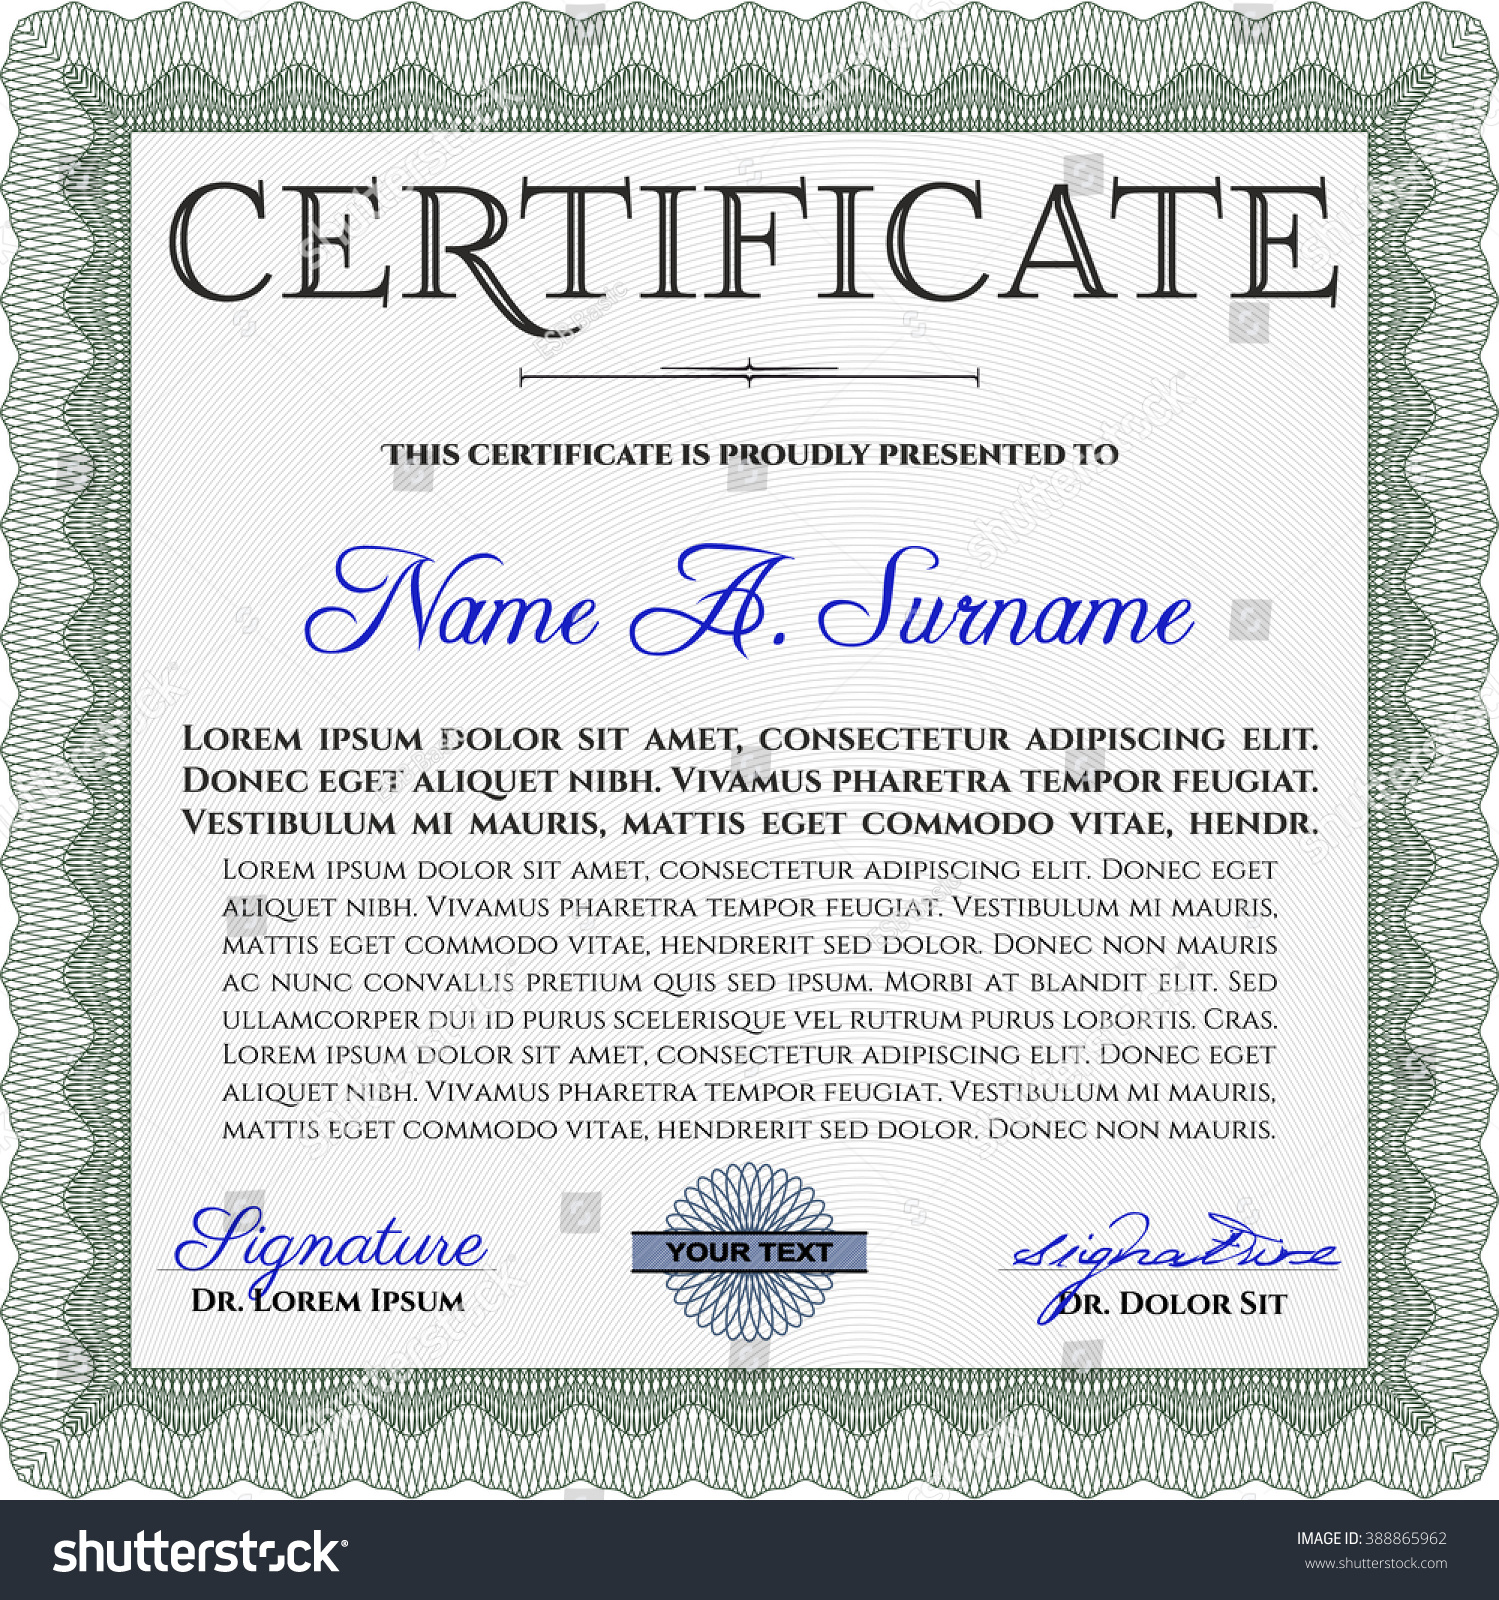 Money certificate template image collections templates example certificate of quality template fieldstation certificate of quality template alramifo image collections alramifo Image collections